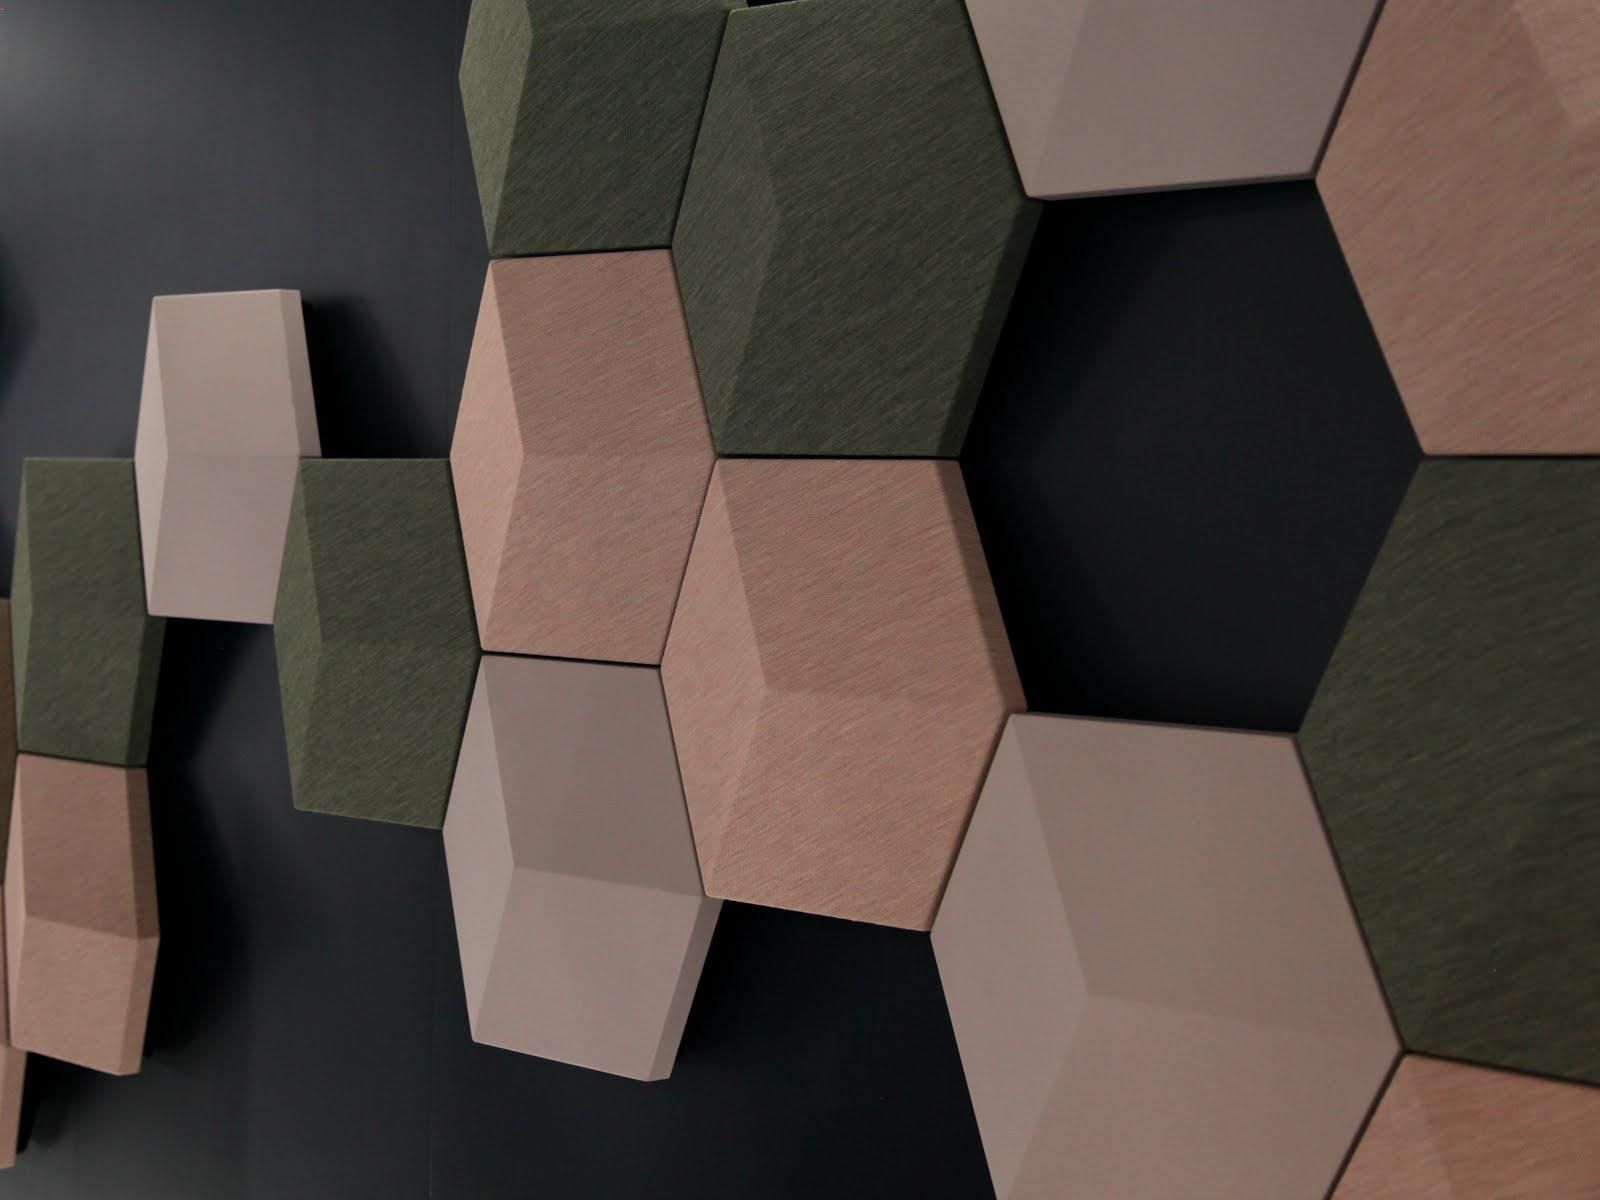 Bang & Olufsen, Kvadrat, wall mounted speakers, design blogger